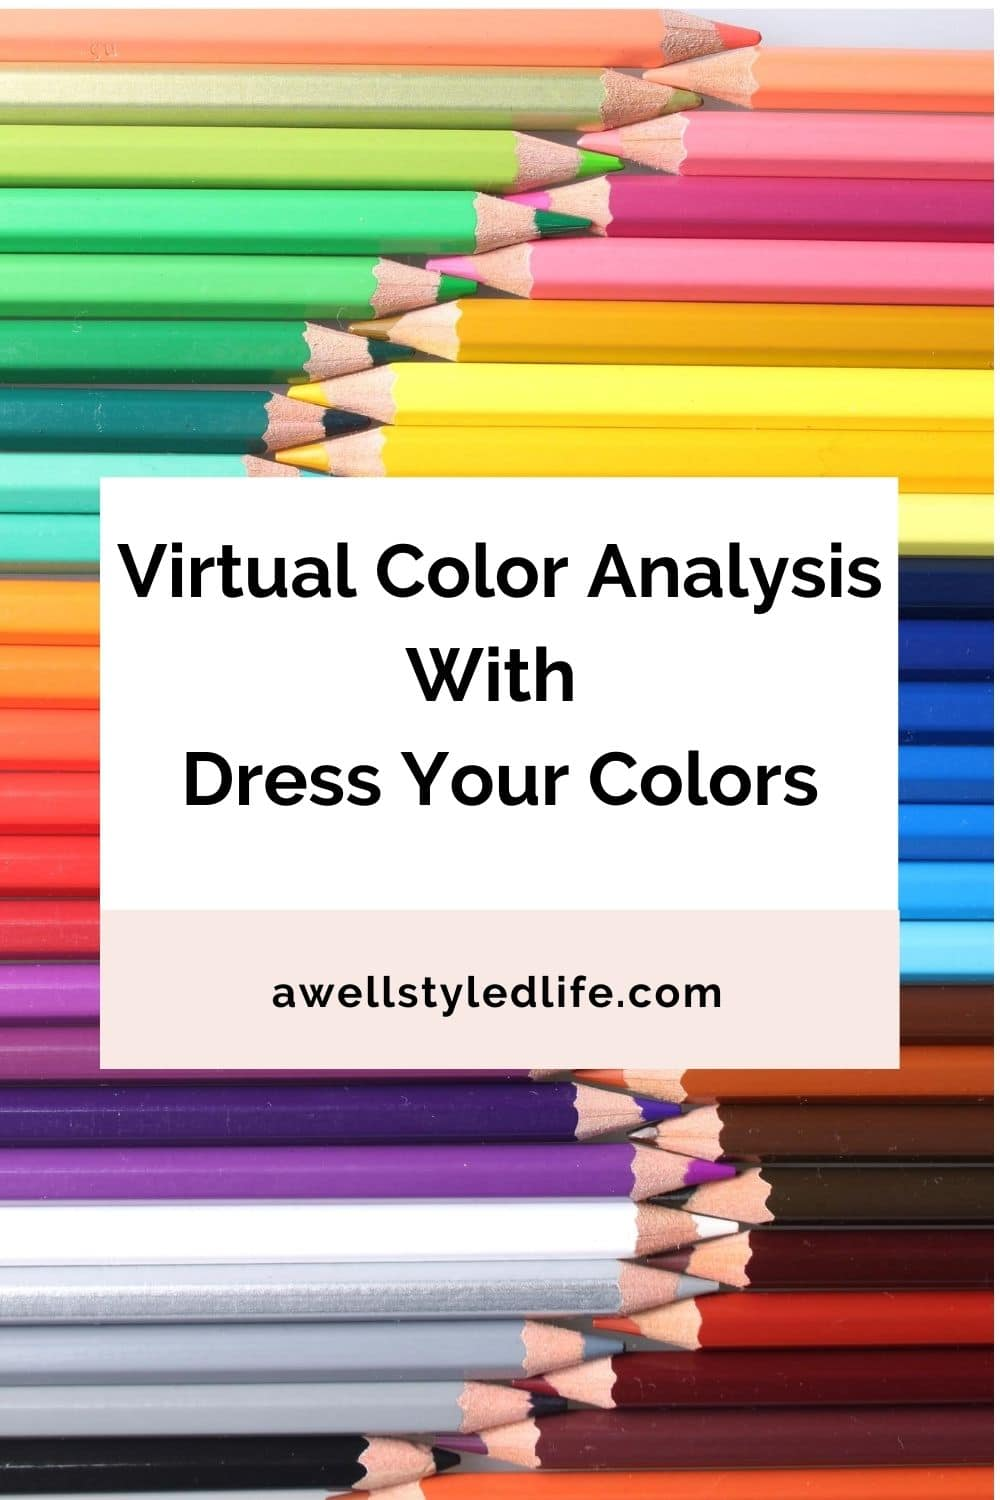 Virtual Color Analysis With Dress Your Colors